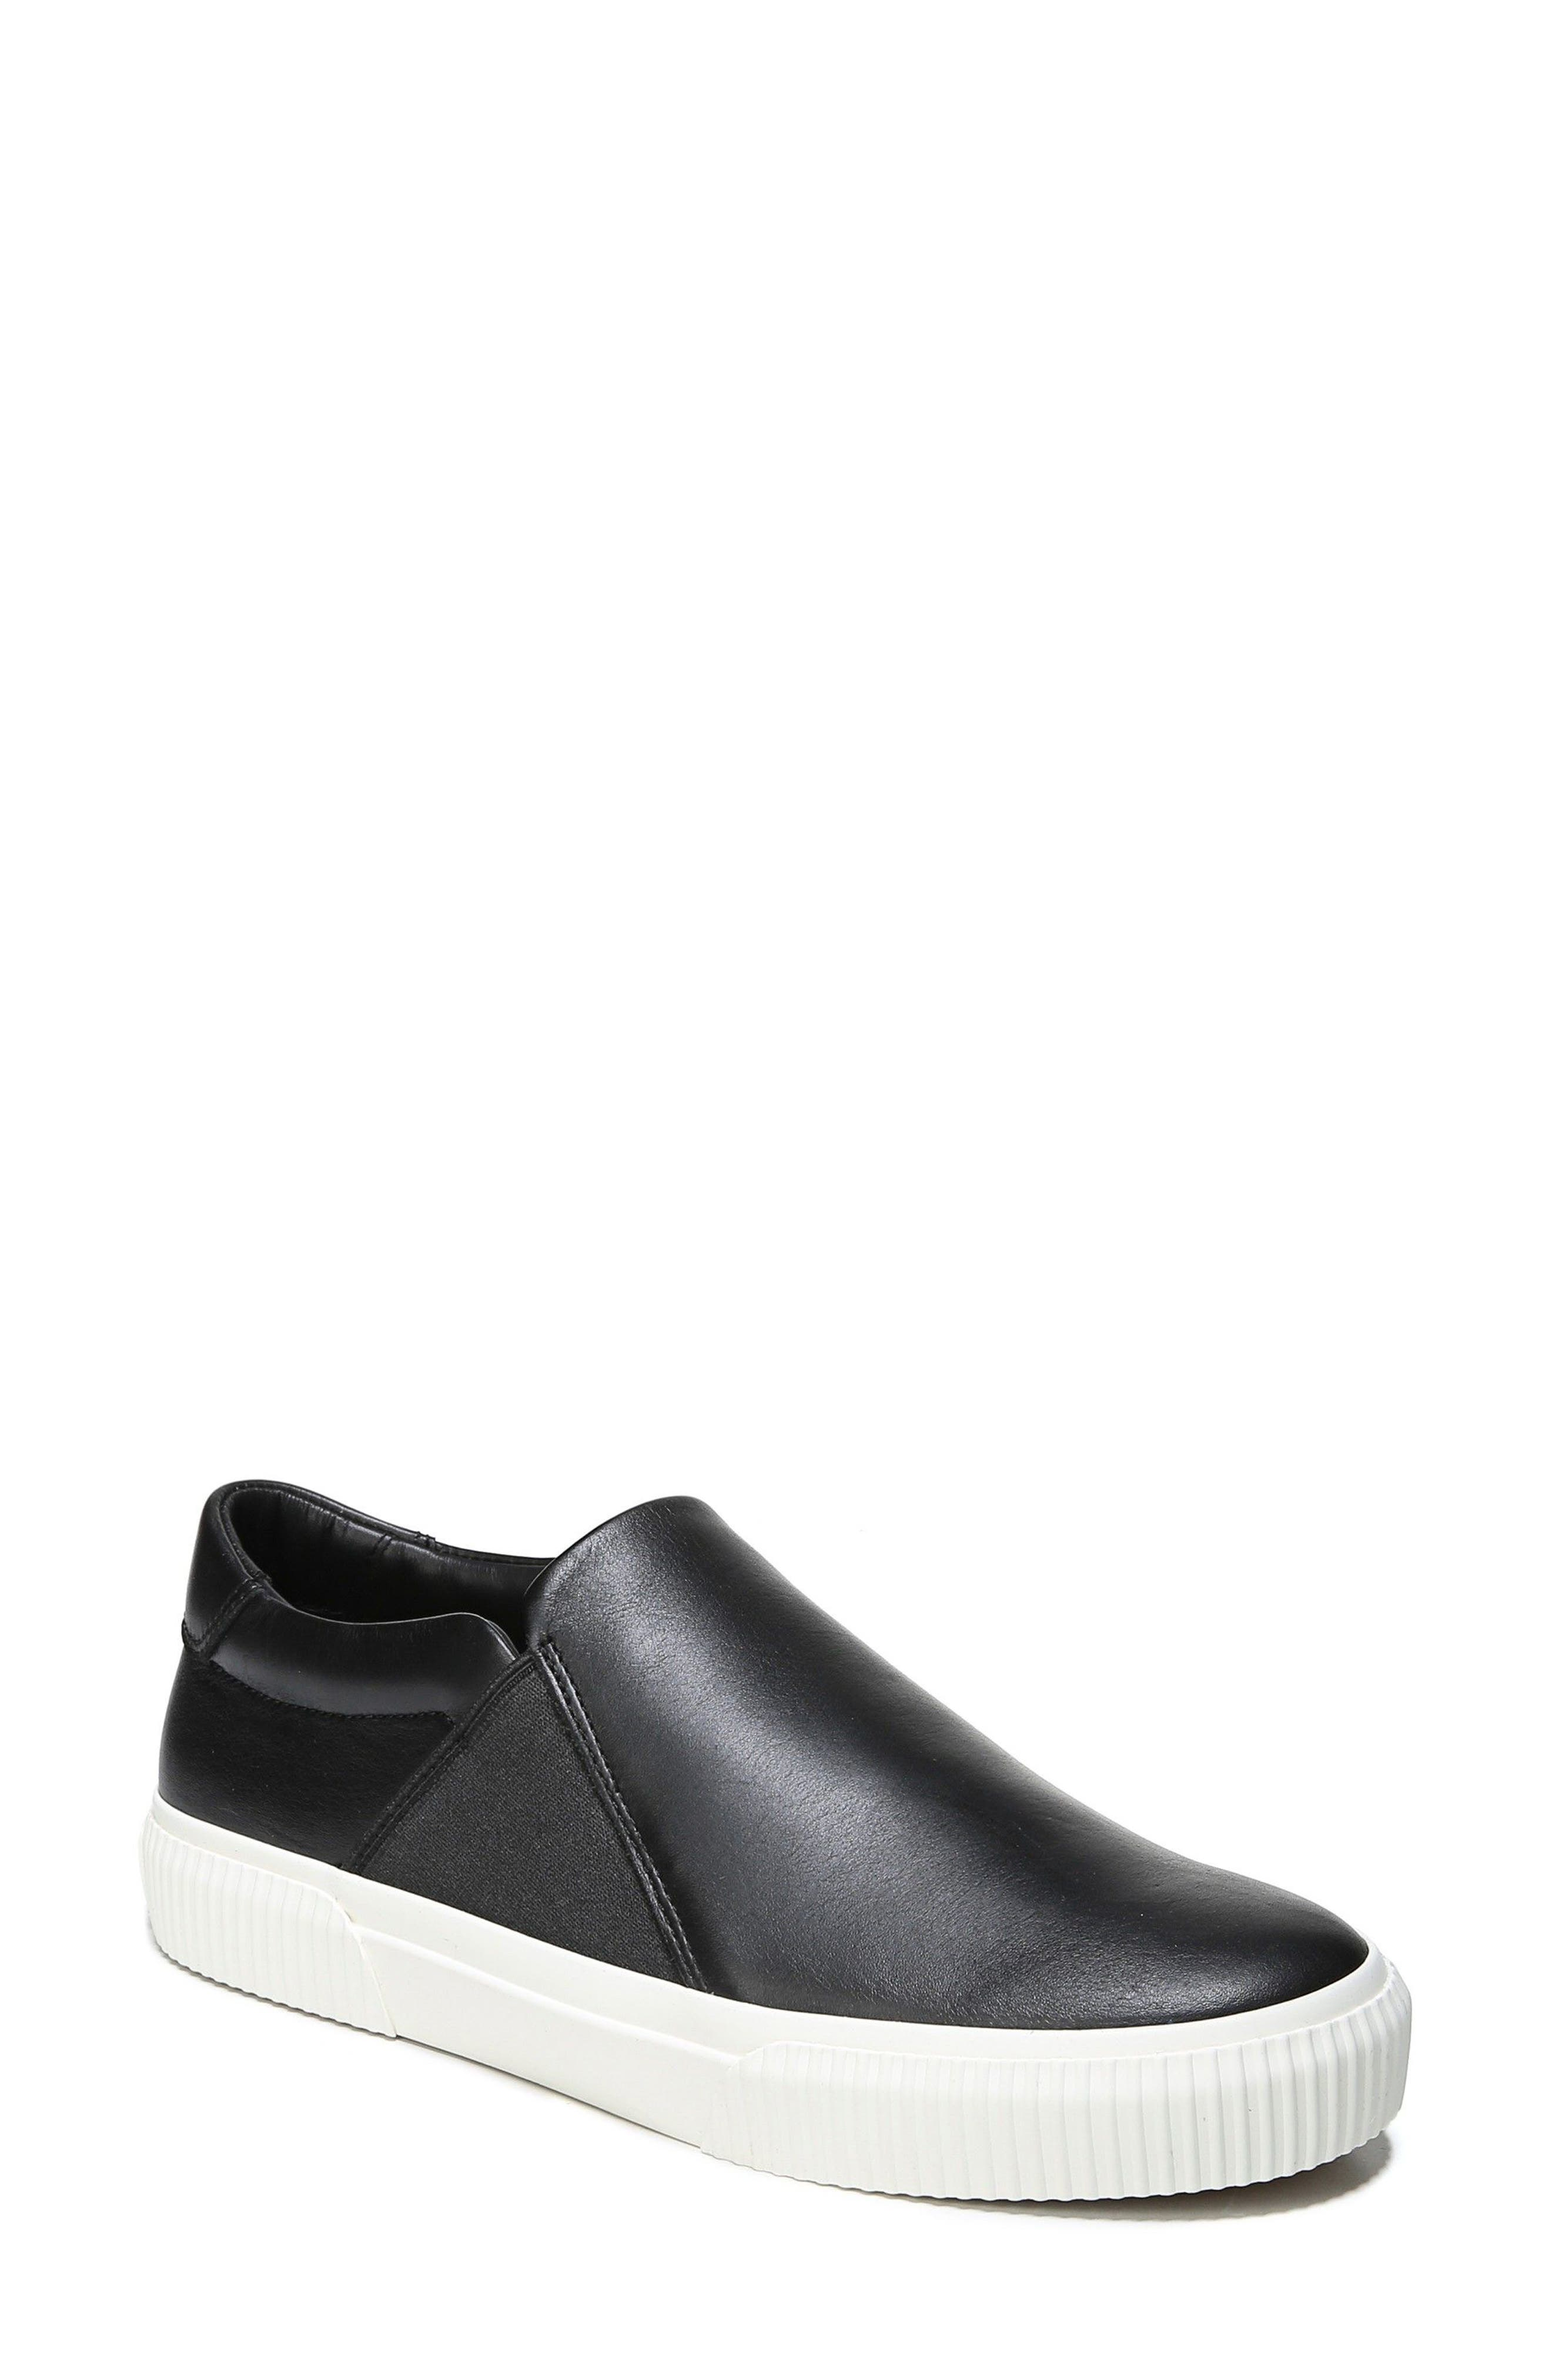 Knox Slip-On Sneaker,                             Main thumbnail 1, color,                             Black Leather